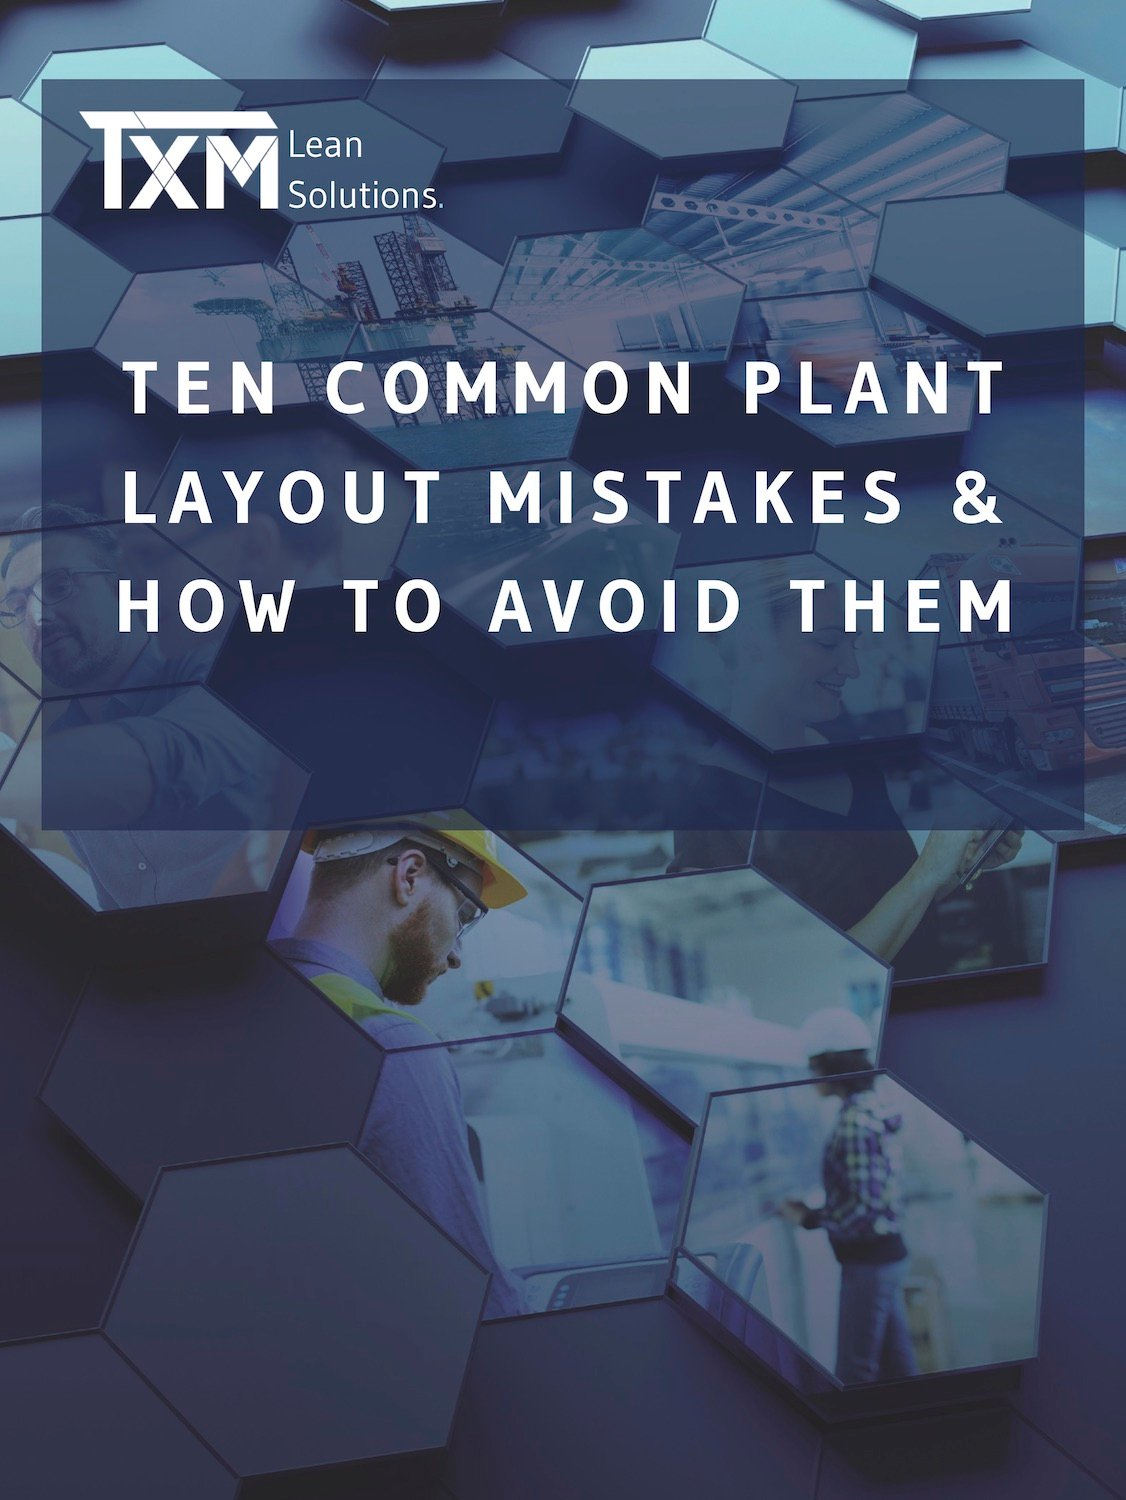 Plant Layout Mistakes & How to Avoid Them Cover